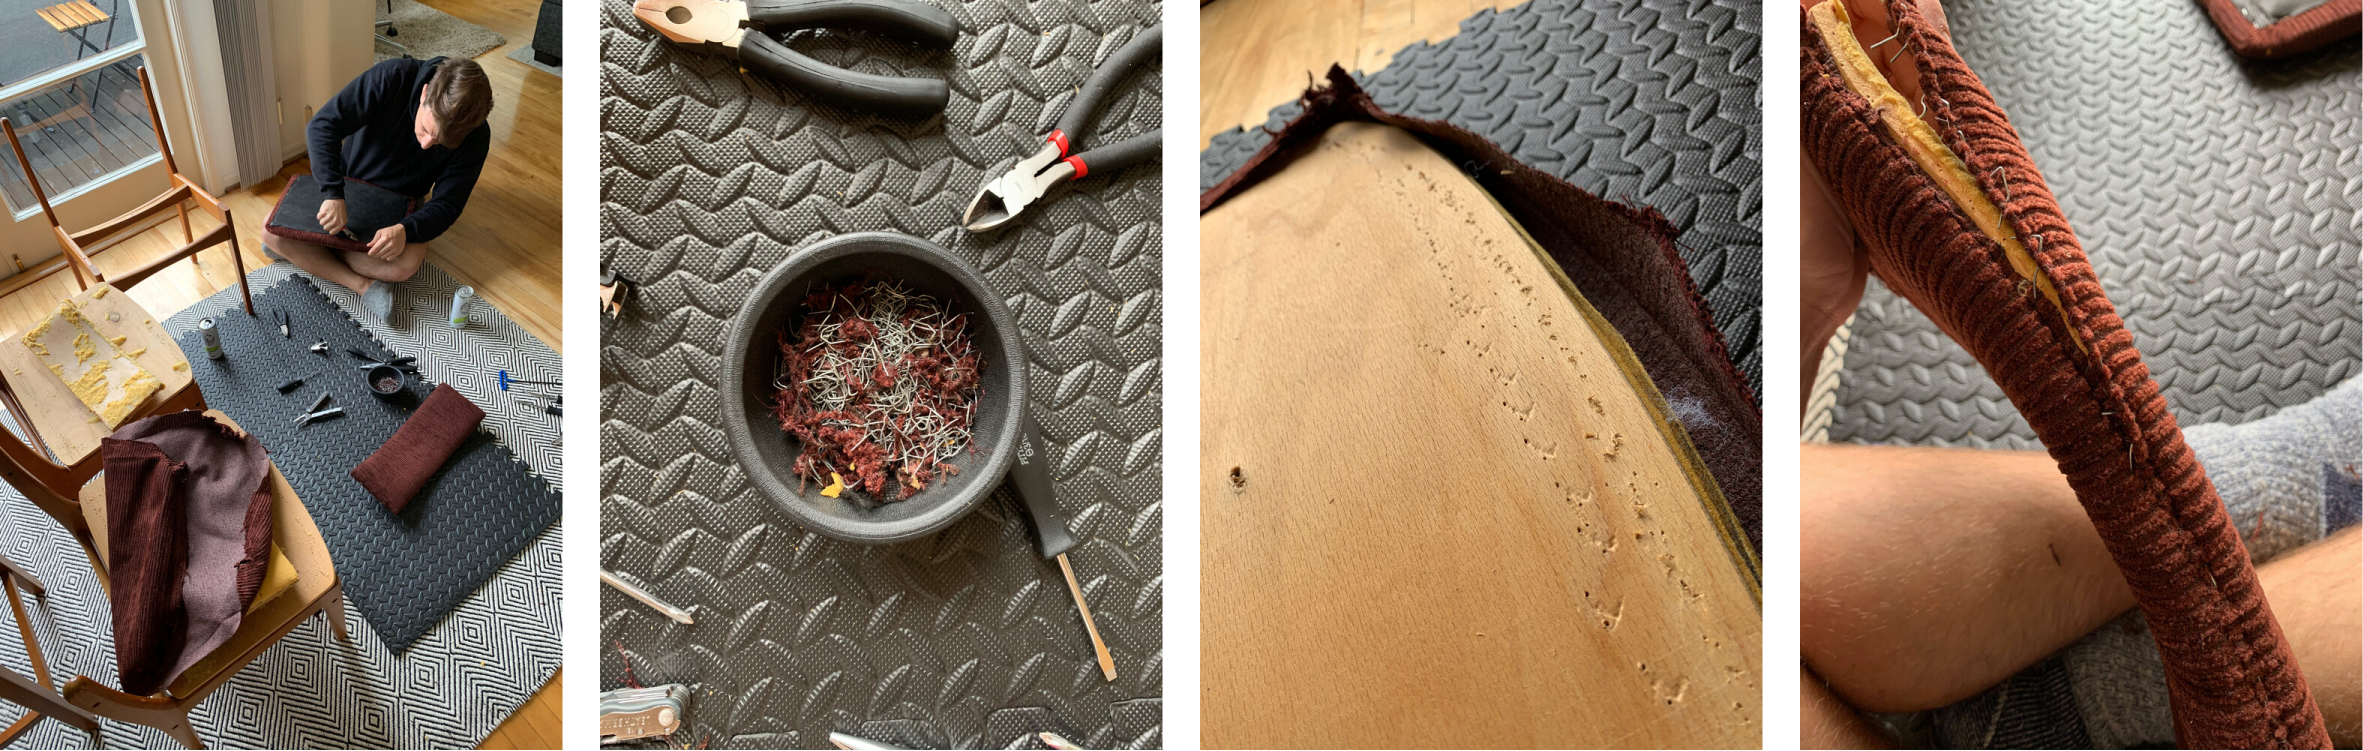 Photos showing removing staples and fabric from chair seats and seat backs